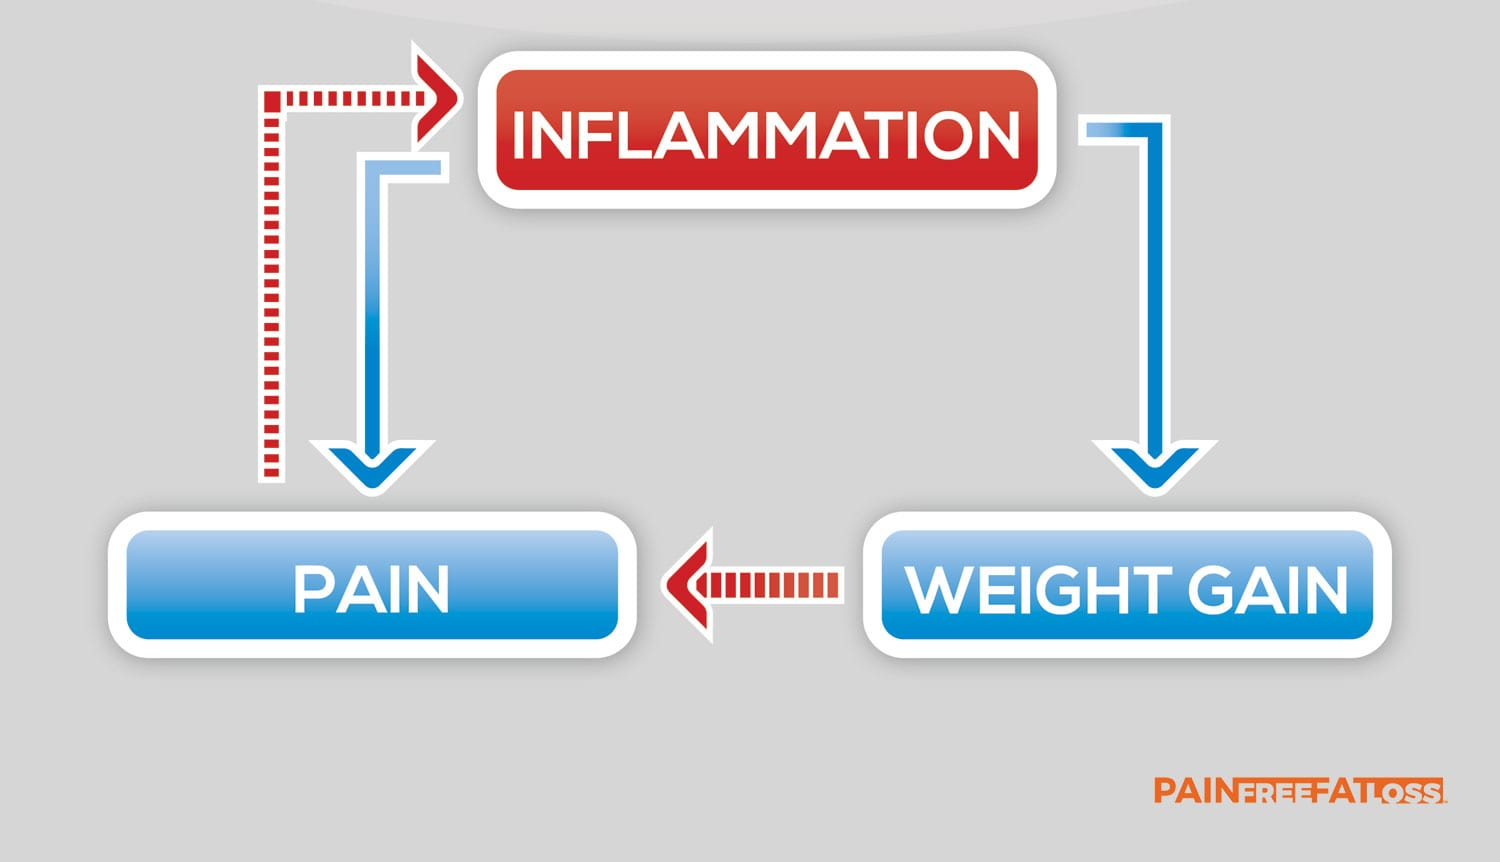 Inflammation Quiz and the Inflammation/Pain/Weight Gain Cycle